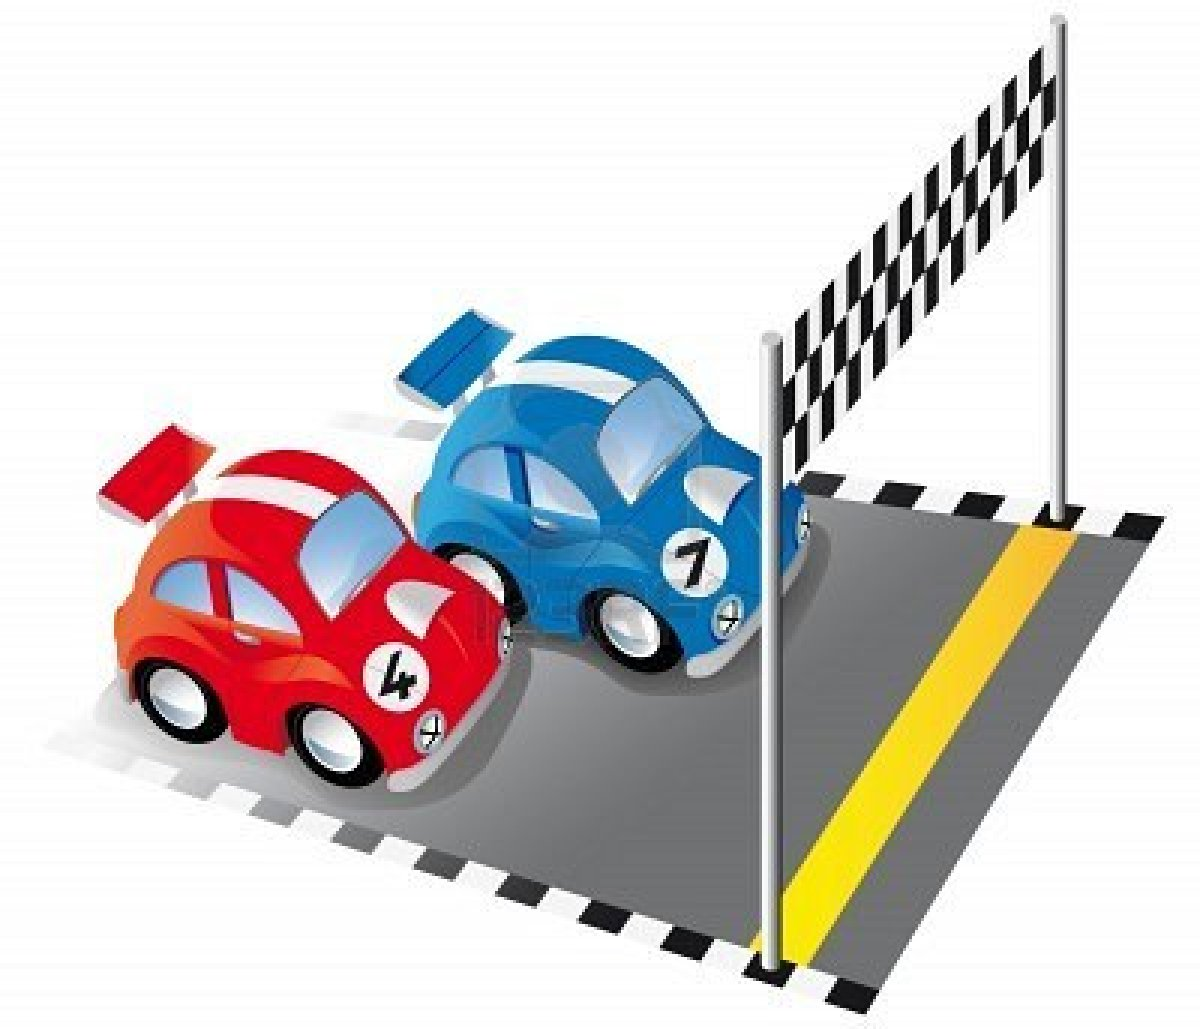 1200x1029 Racing Cartoon Race Car Clipart Clip Art